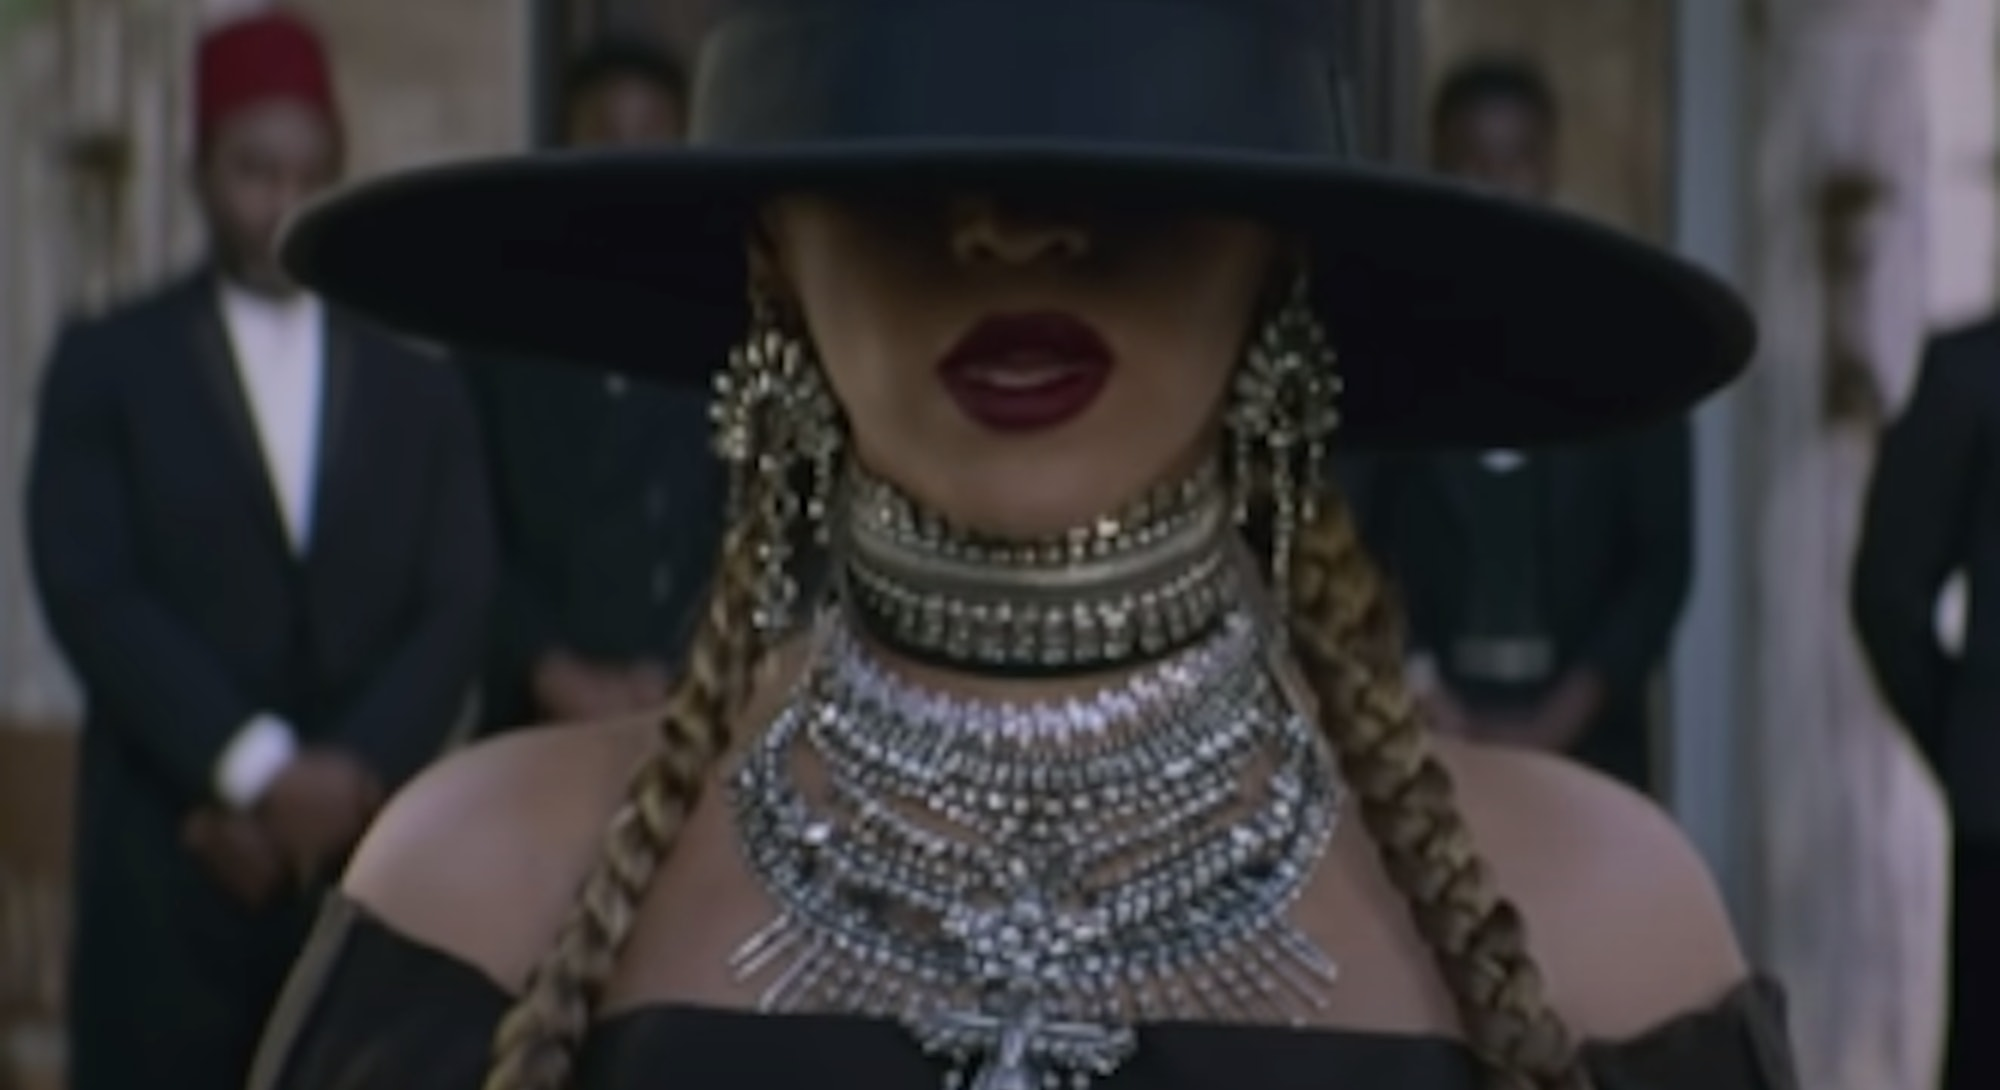 Beyoncé's music video evolution, from early aughts queen to masterful storyteller.